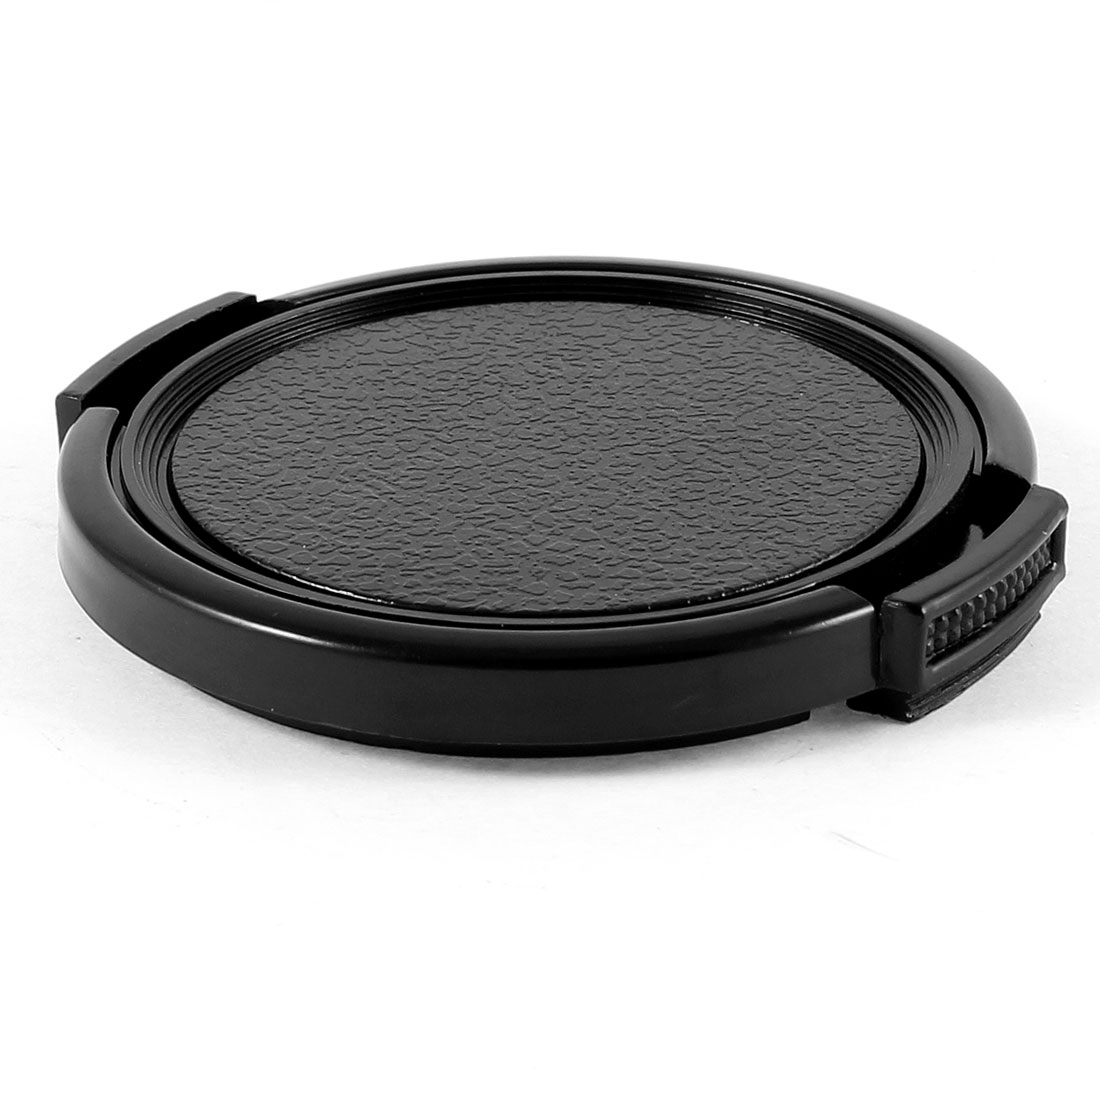 Univeral Camera 49mm Front Cap Cover for Lens Filter